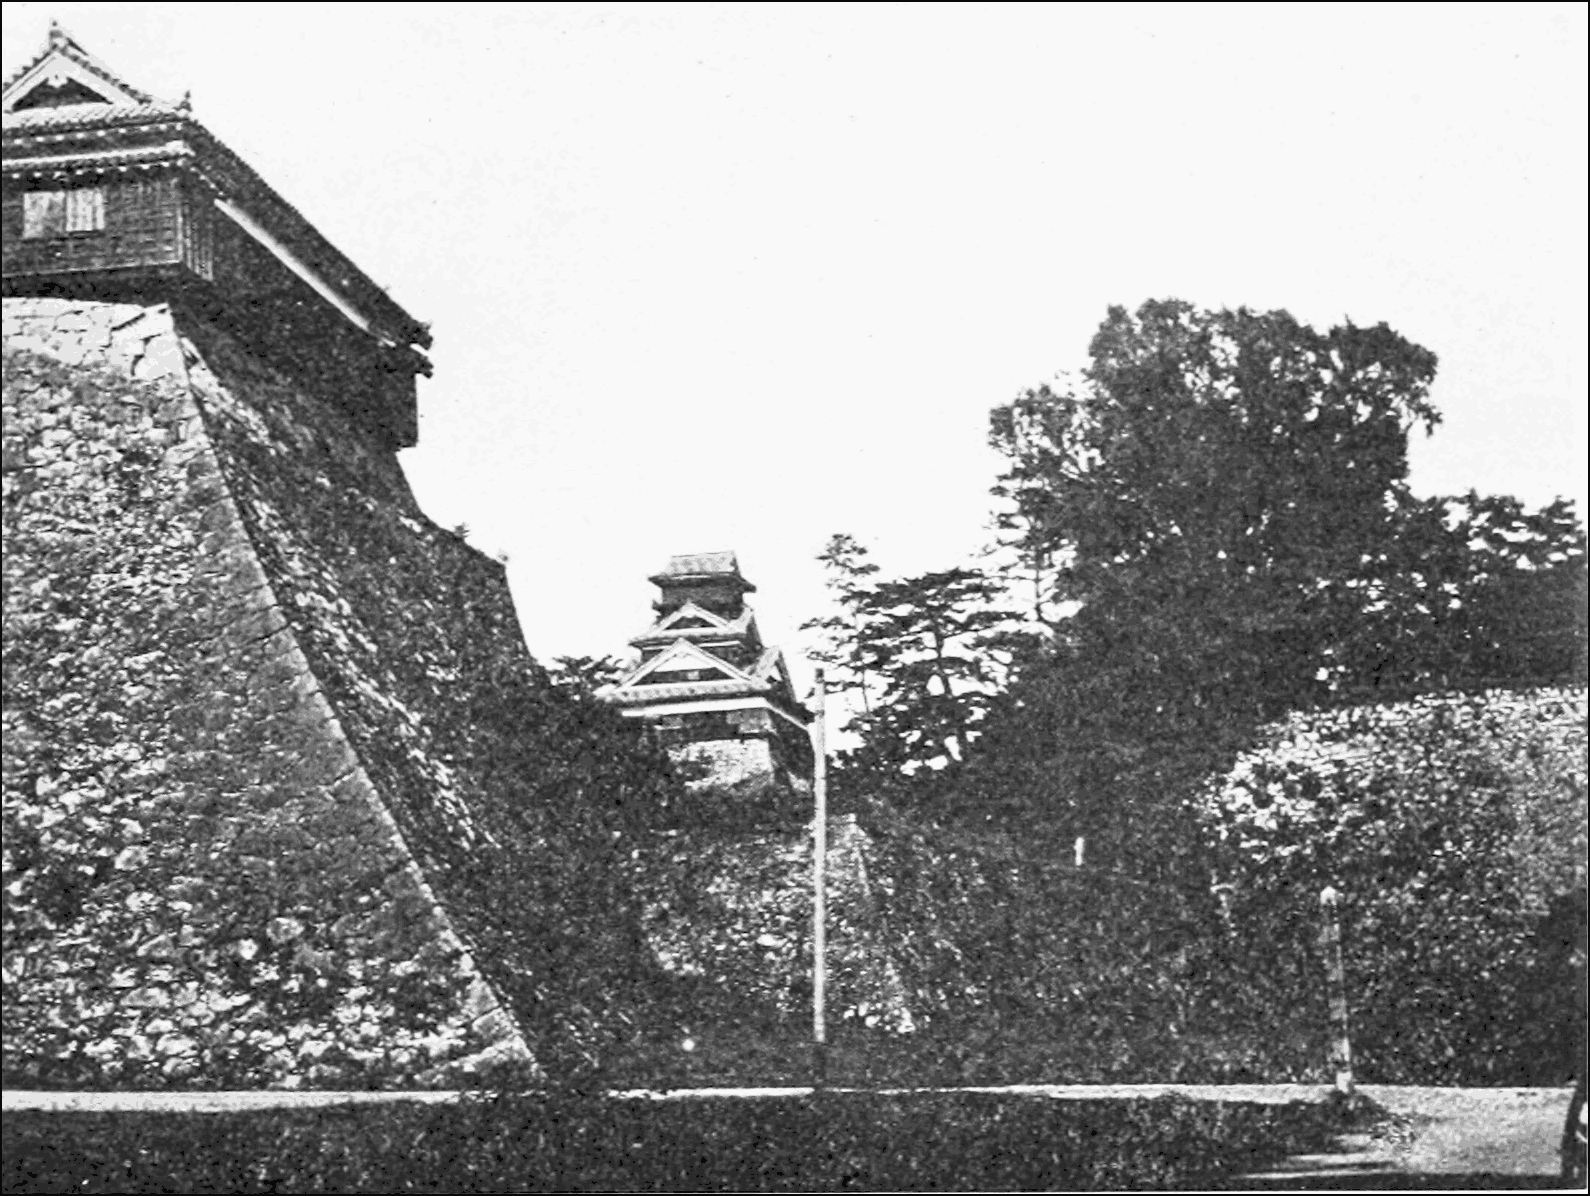 PSM V71 D039 The castle at kuamoto with uncemented masonry walls.png